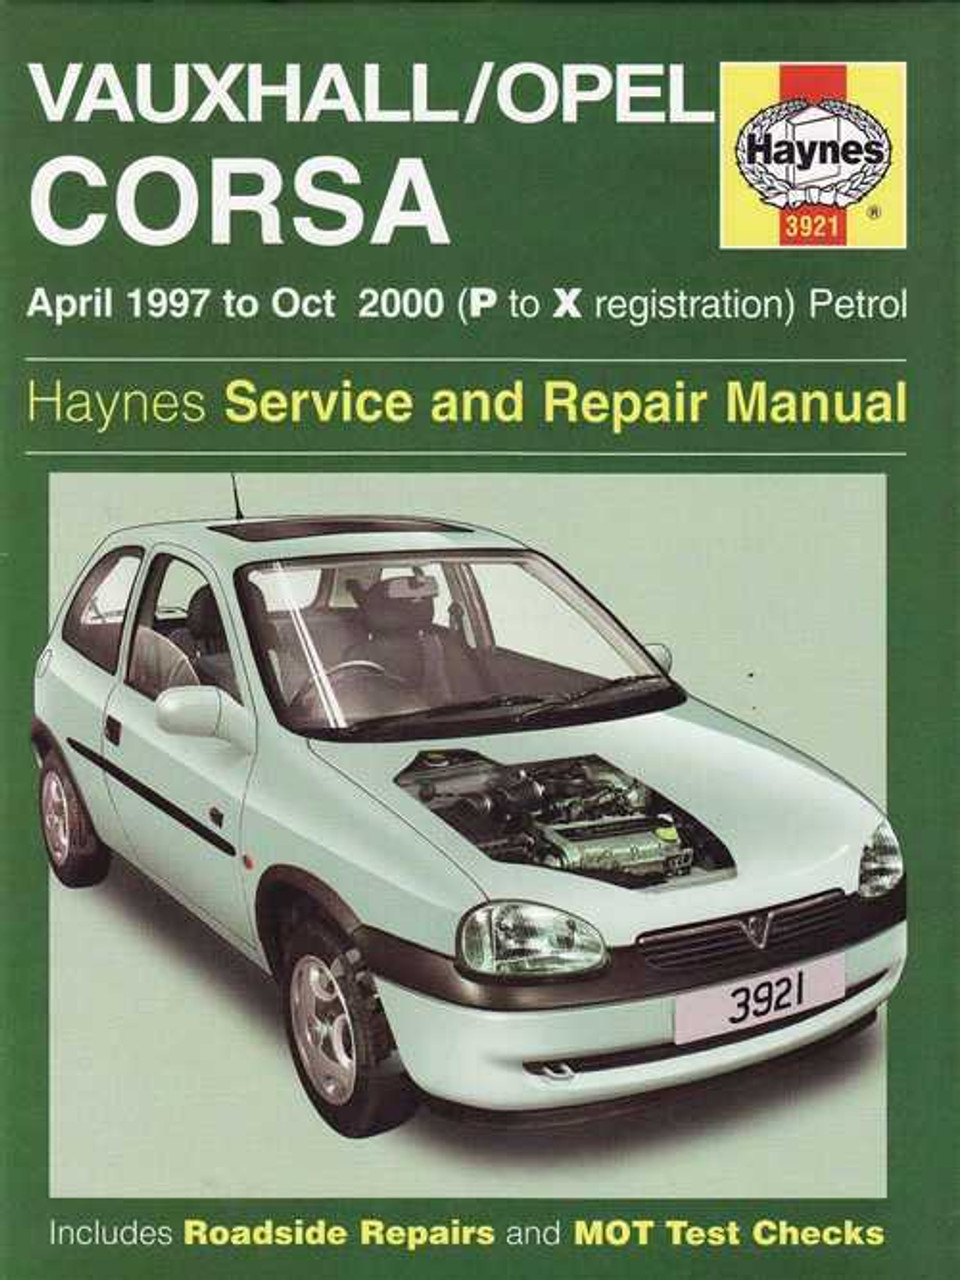 holden barina vauxhall opel corsa petrol 1997 2000 workshop manual rh automotobookshop com au As Holden 2002 Holden Astra